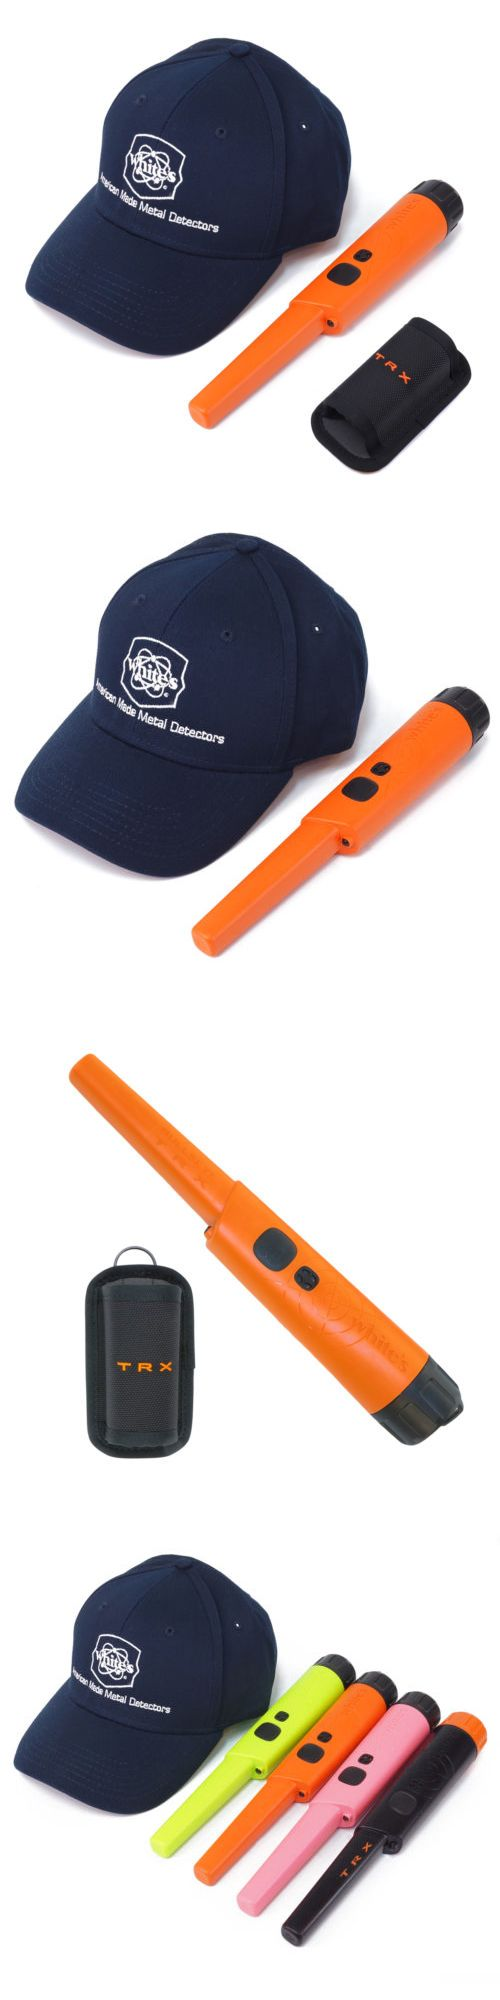 Metal Detectors: Whites Bullseye Trx Pinpointer Pin Pointer Orange W Holster And White S Navy Hat -> BUY IT NOW ONLY: $149.95 on eBay!